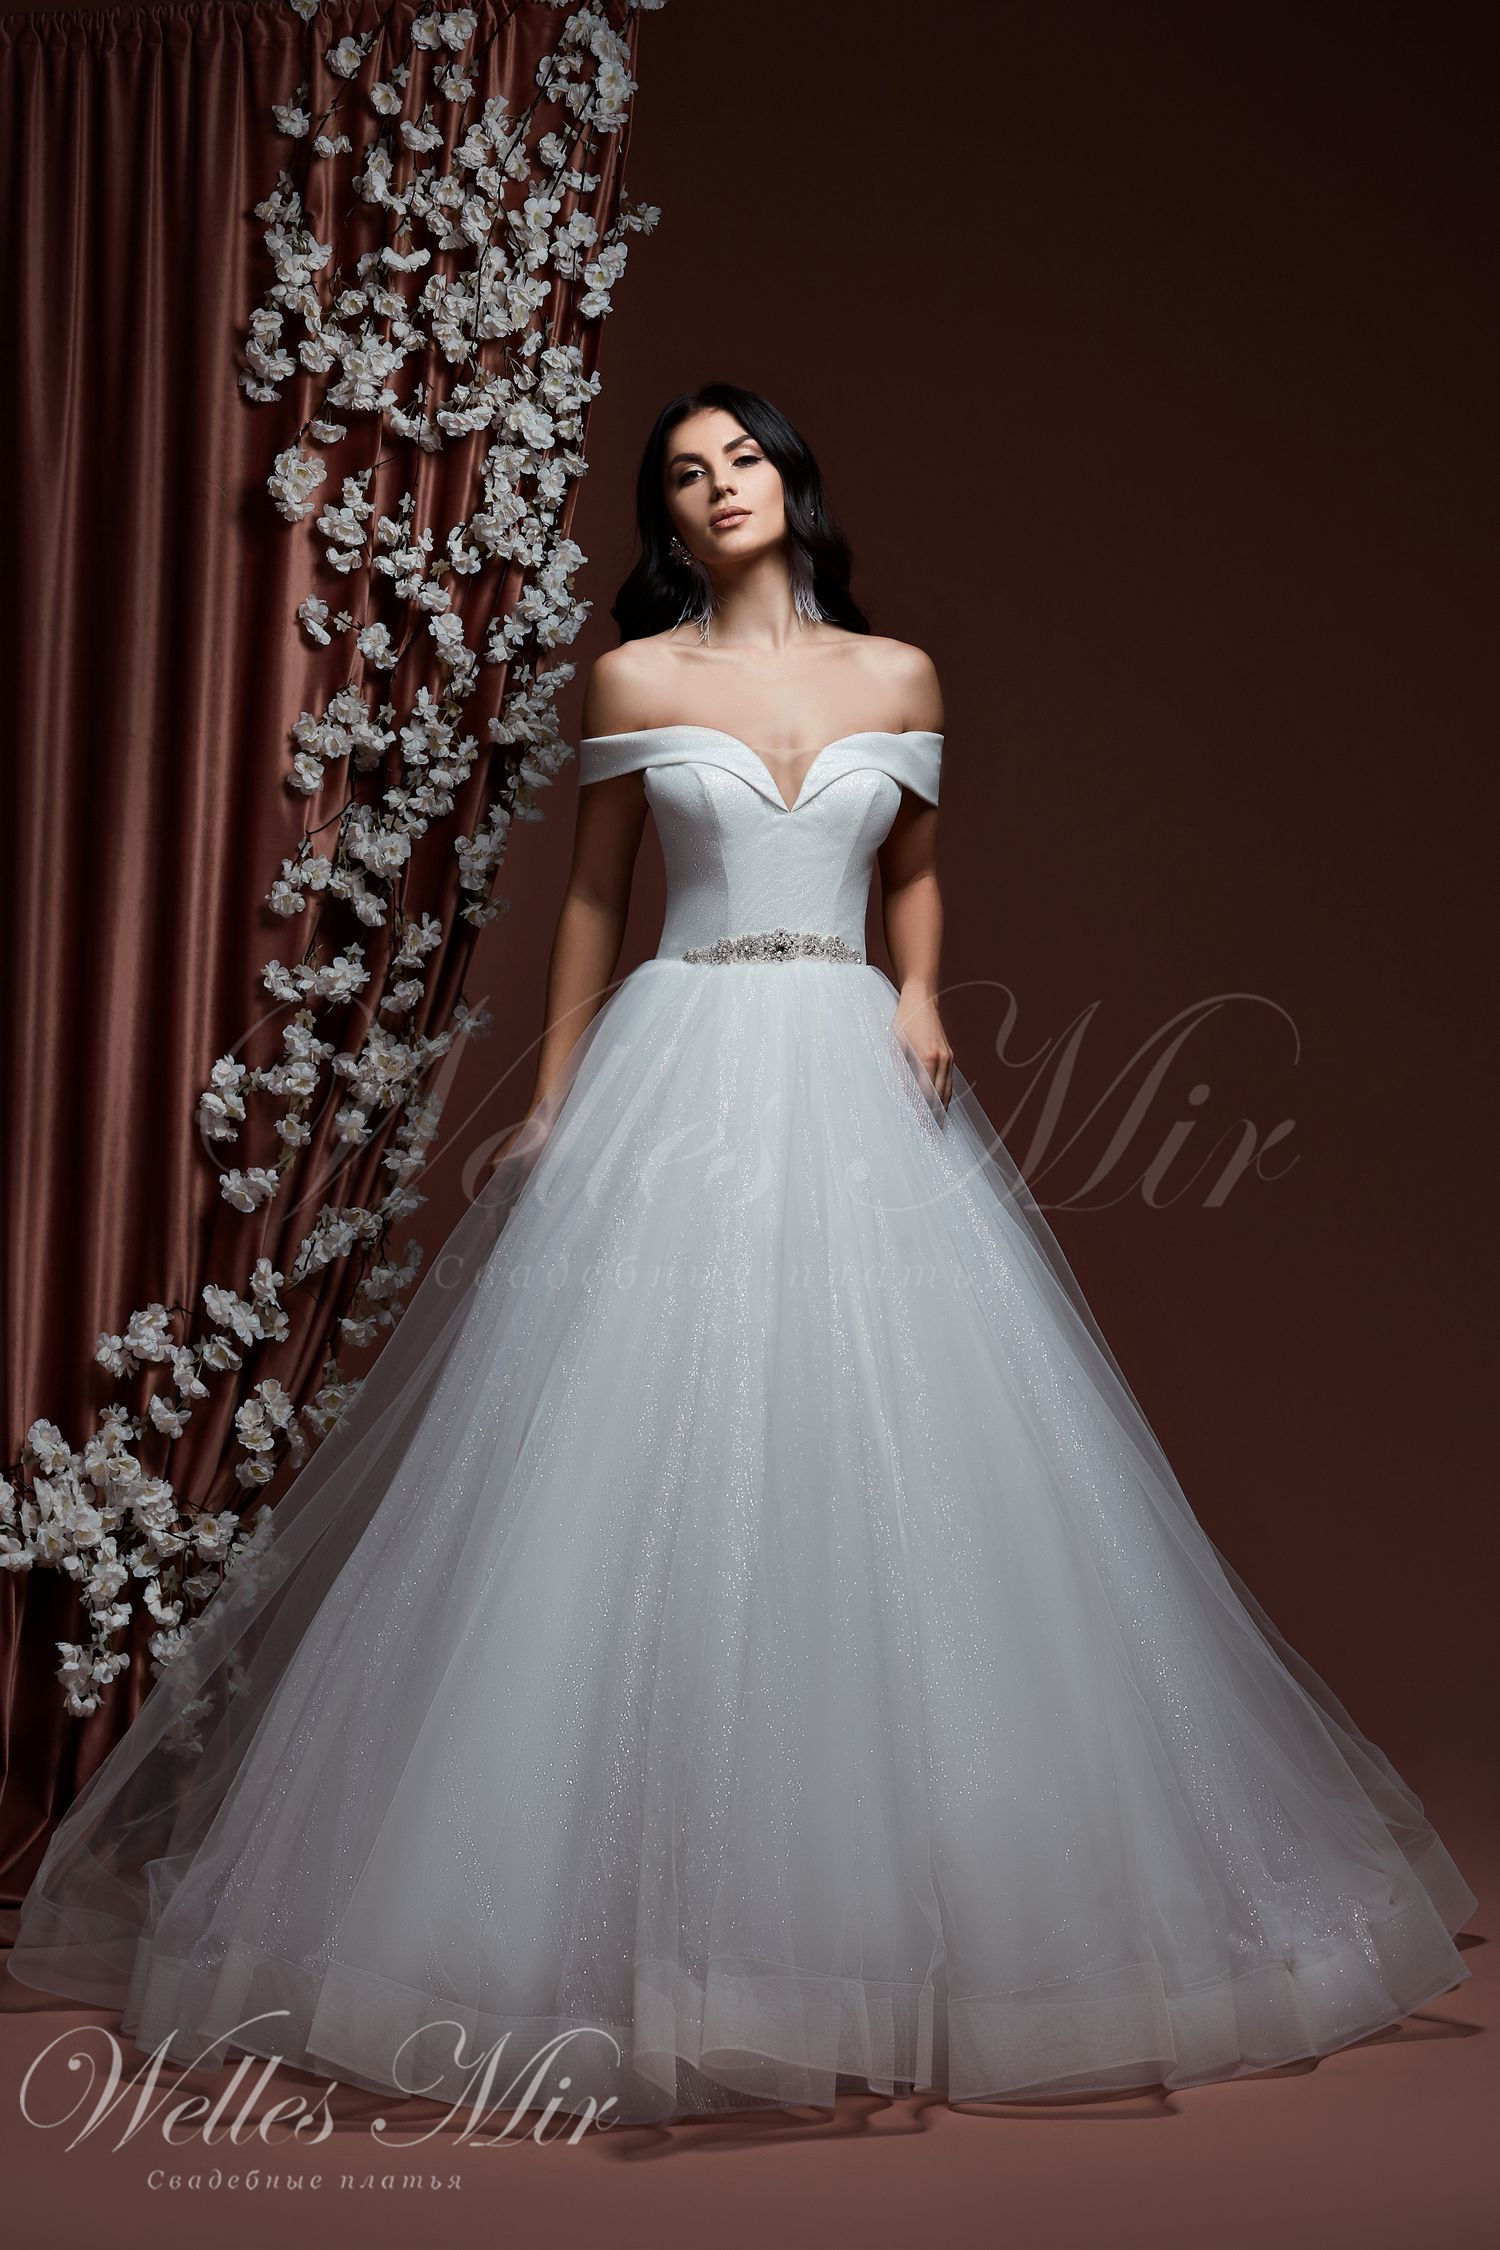 Wedding dresses 507